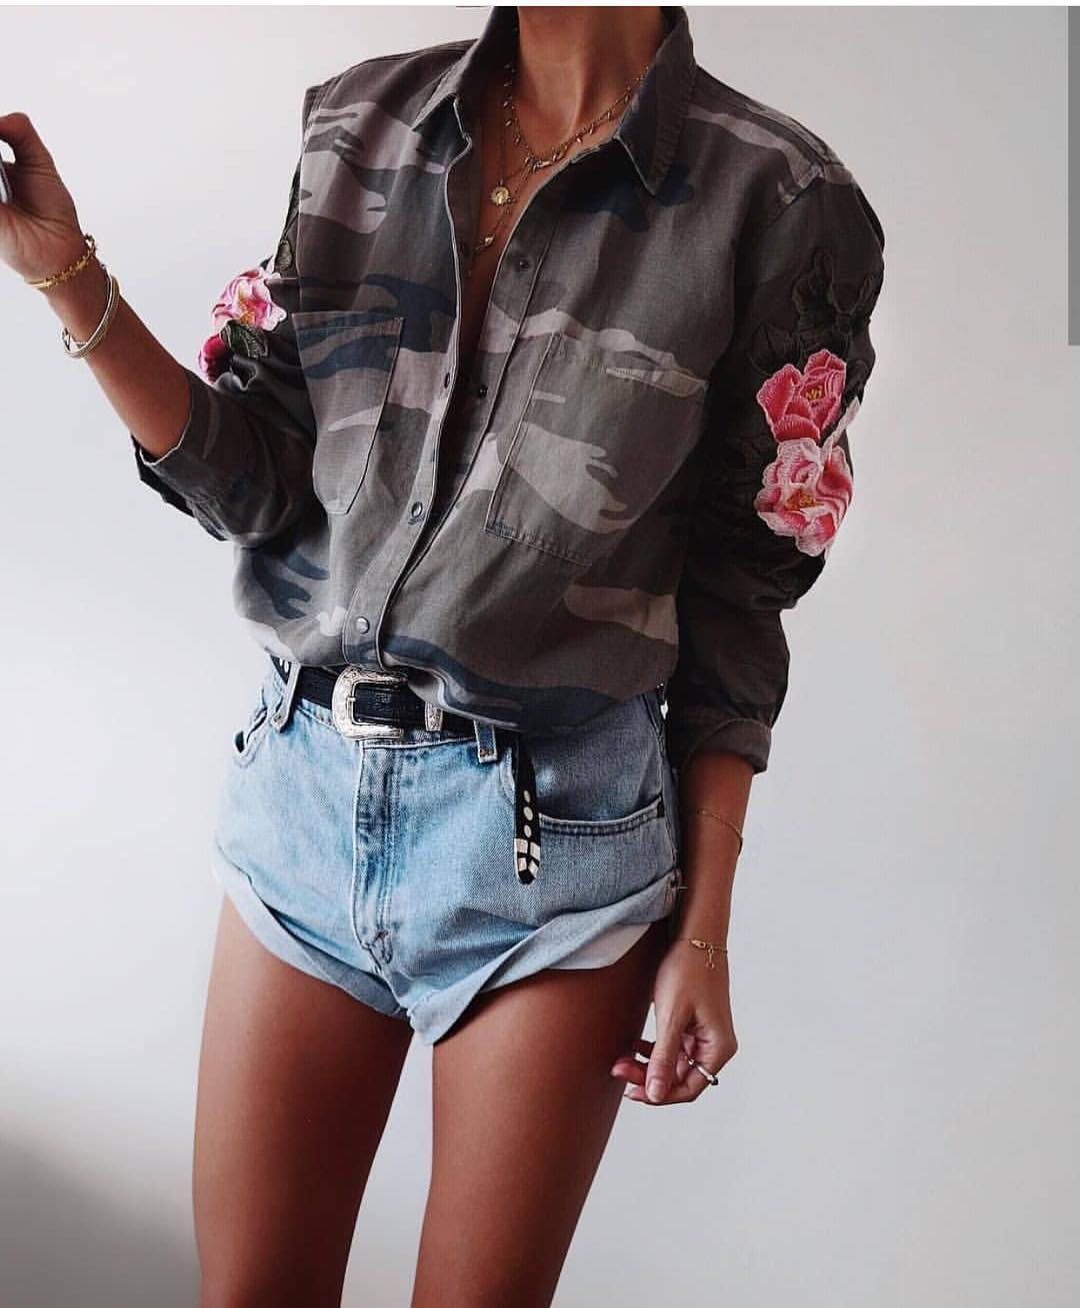 Camouflage Print Shirt With Rose Print Embroidery: Must Try Summer 2019